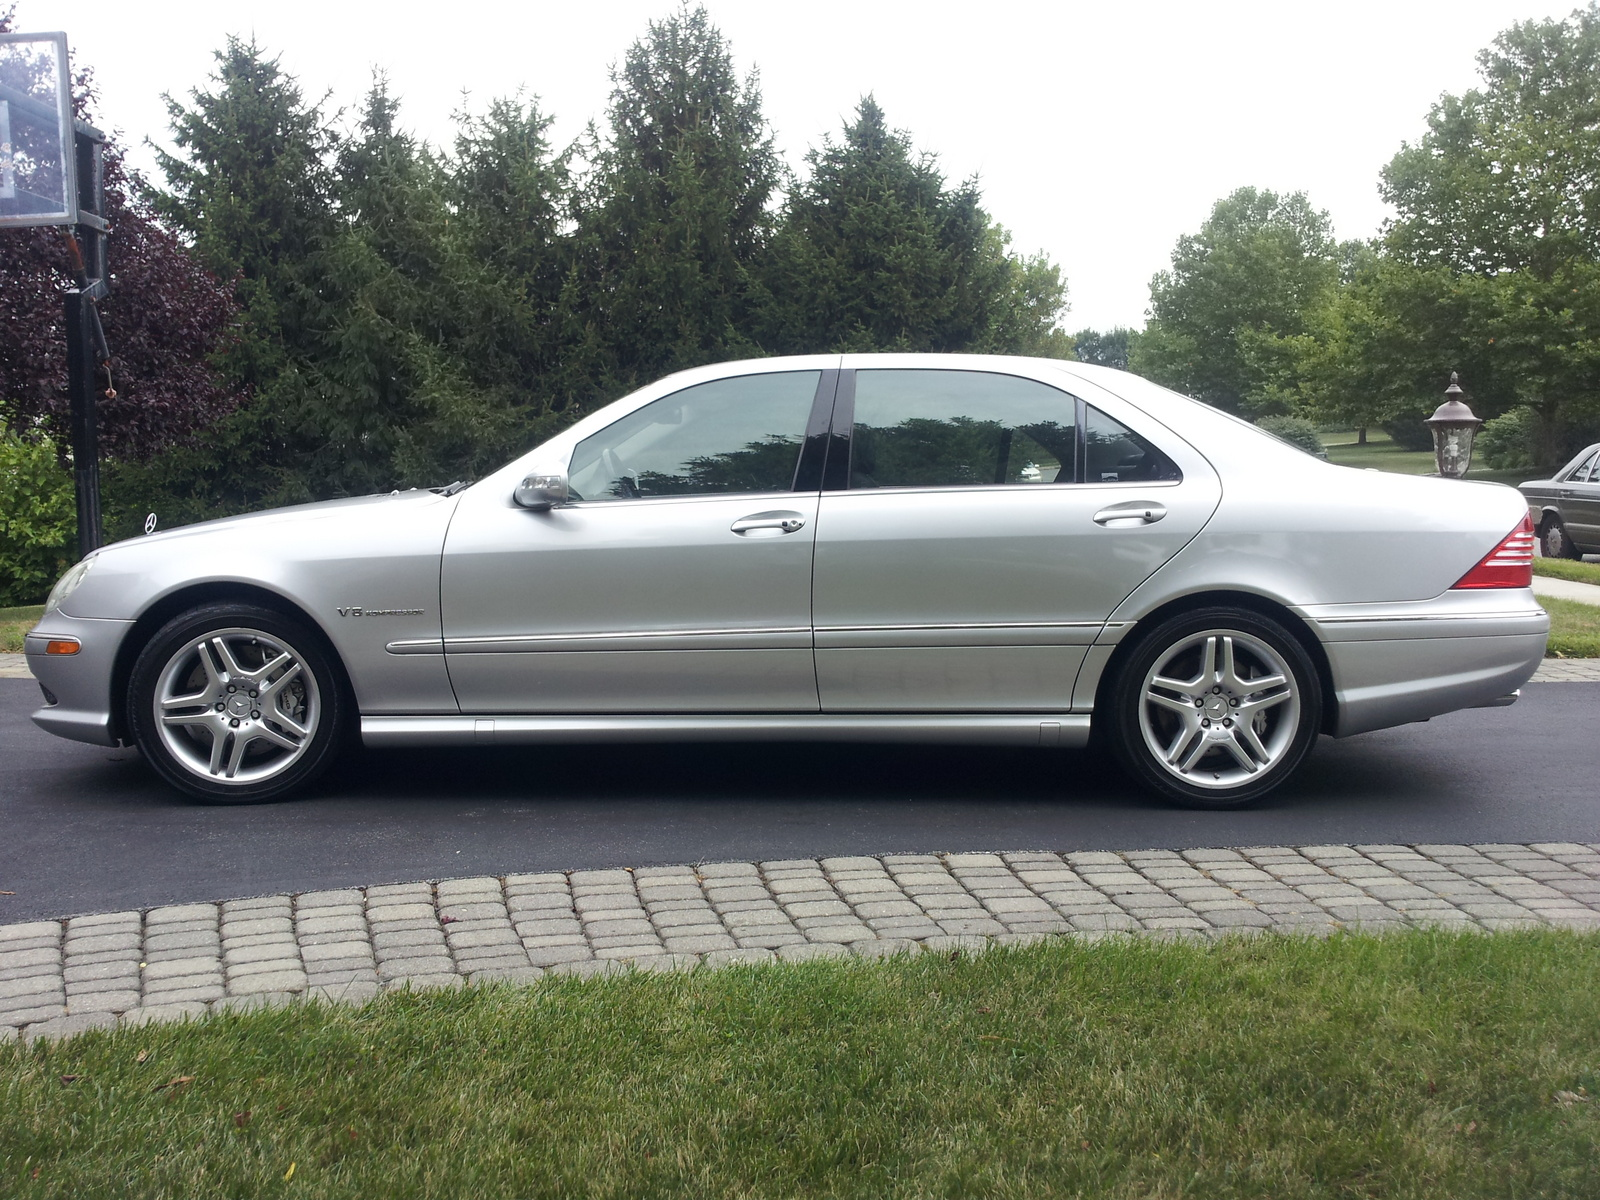 2005 mercedes benz s class pictures cargurus for Mercedes benz s500 amg